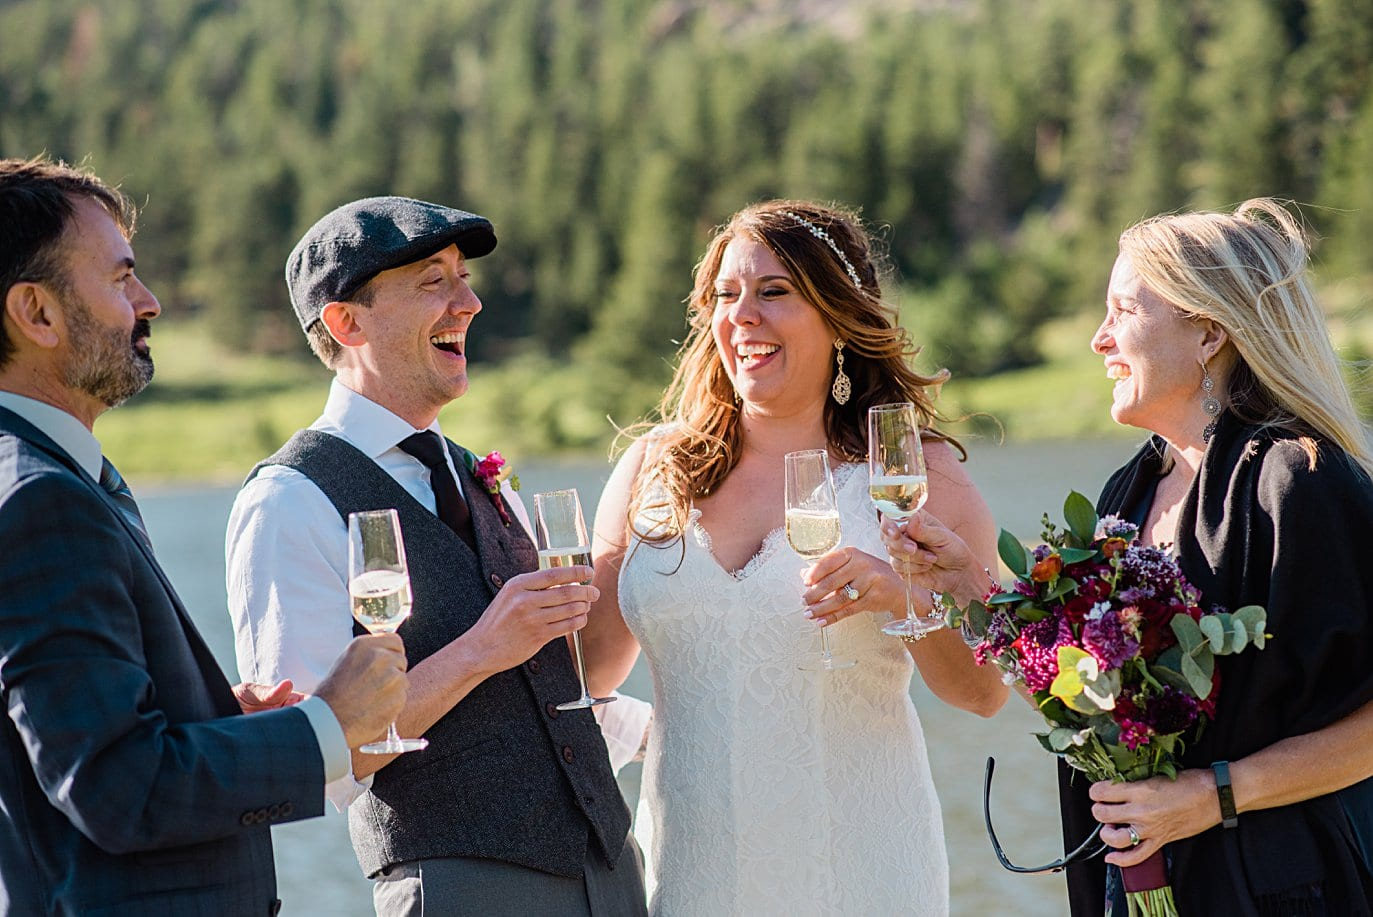 bride and groom and friends share champagne at Lily Lake Elopement by Estes Park elopement photographer Jennie Crate